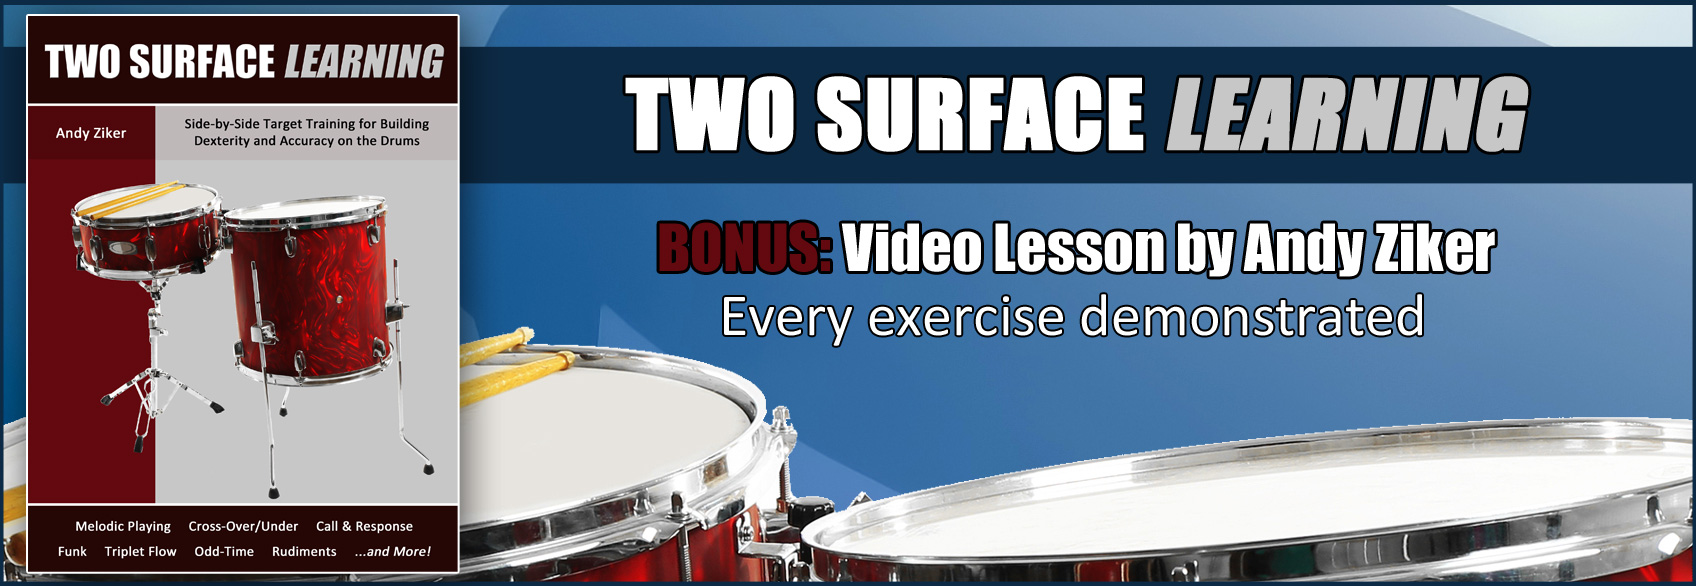 Two Surface Learning - Ebook